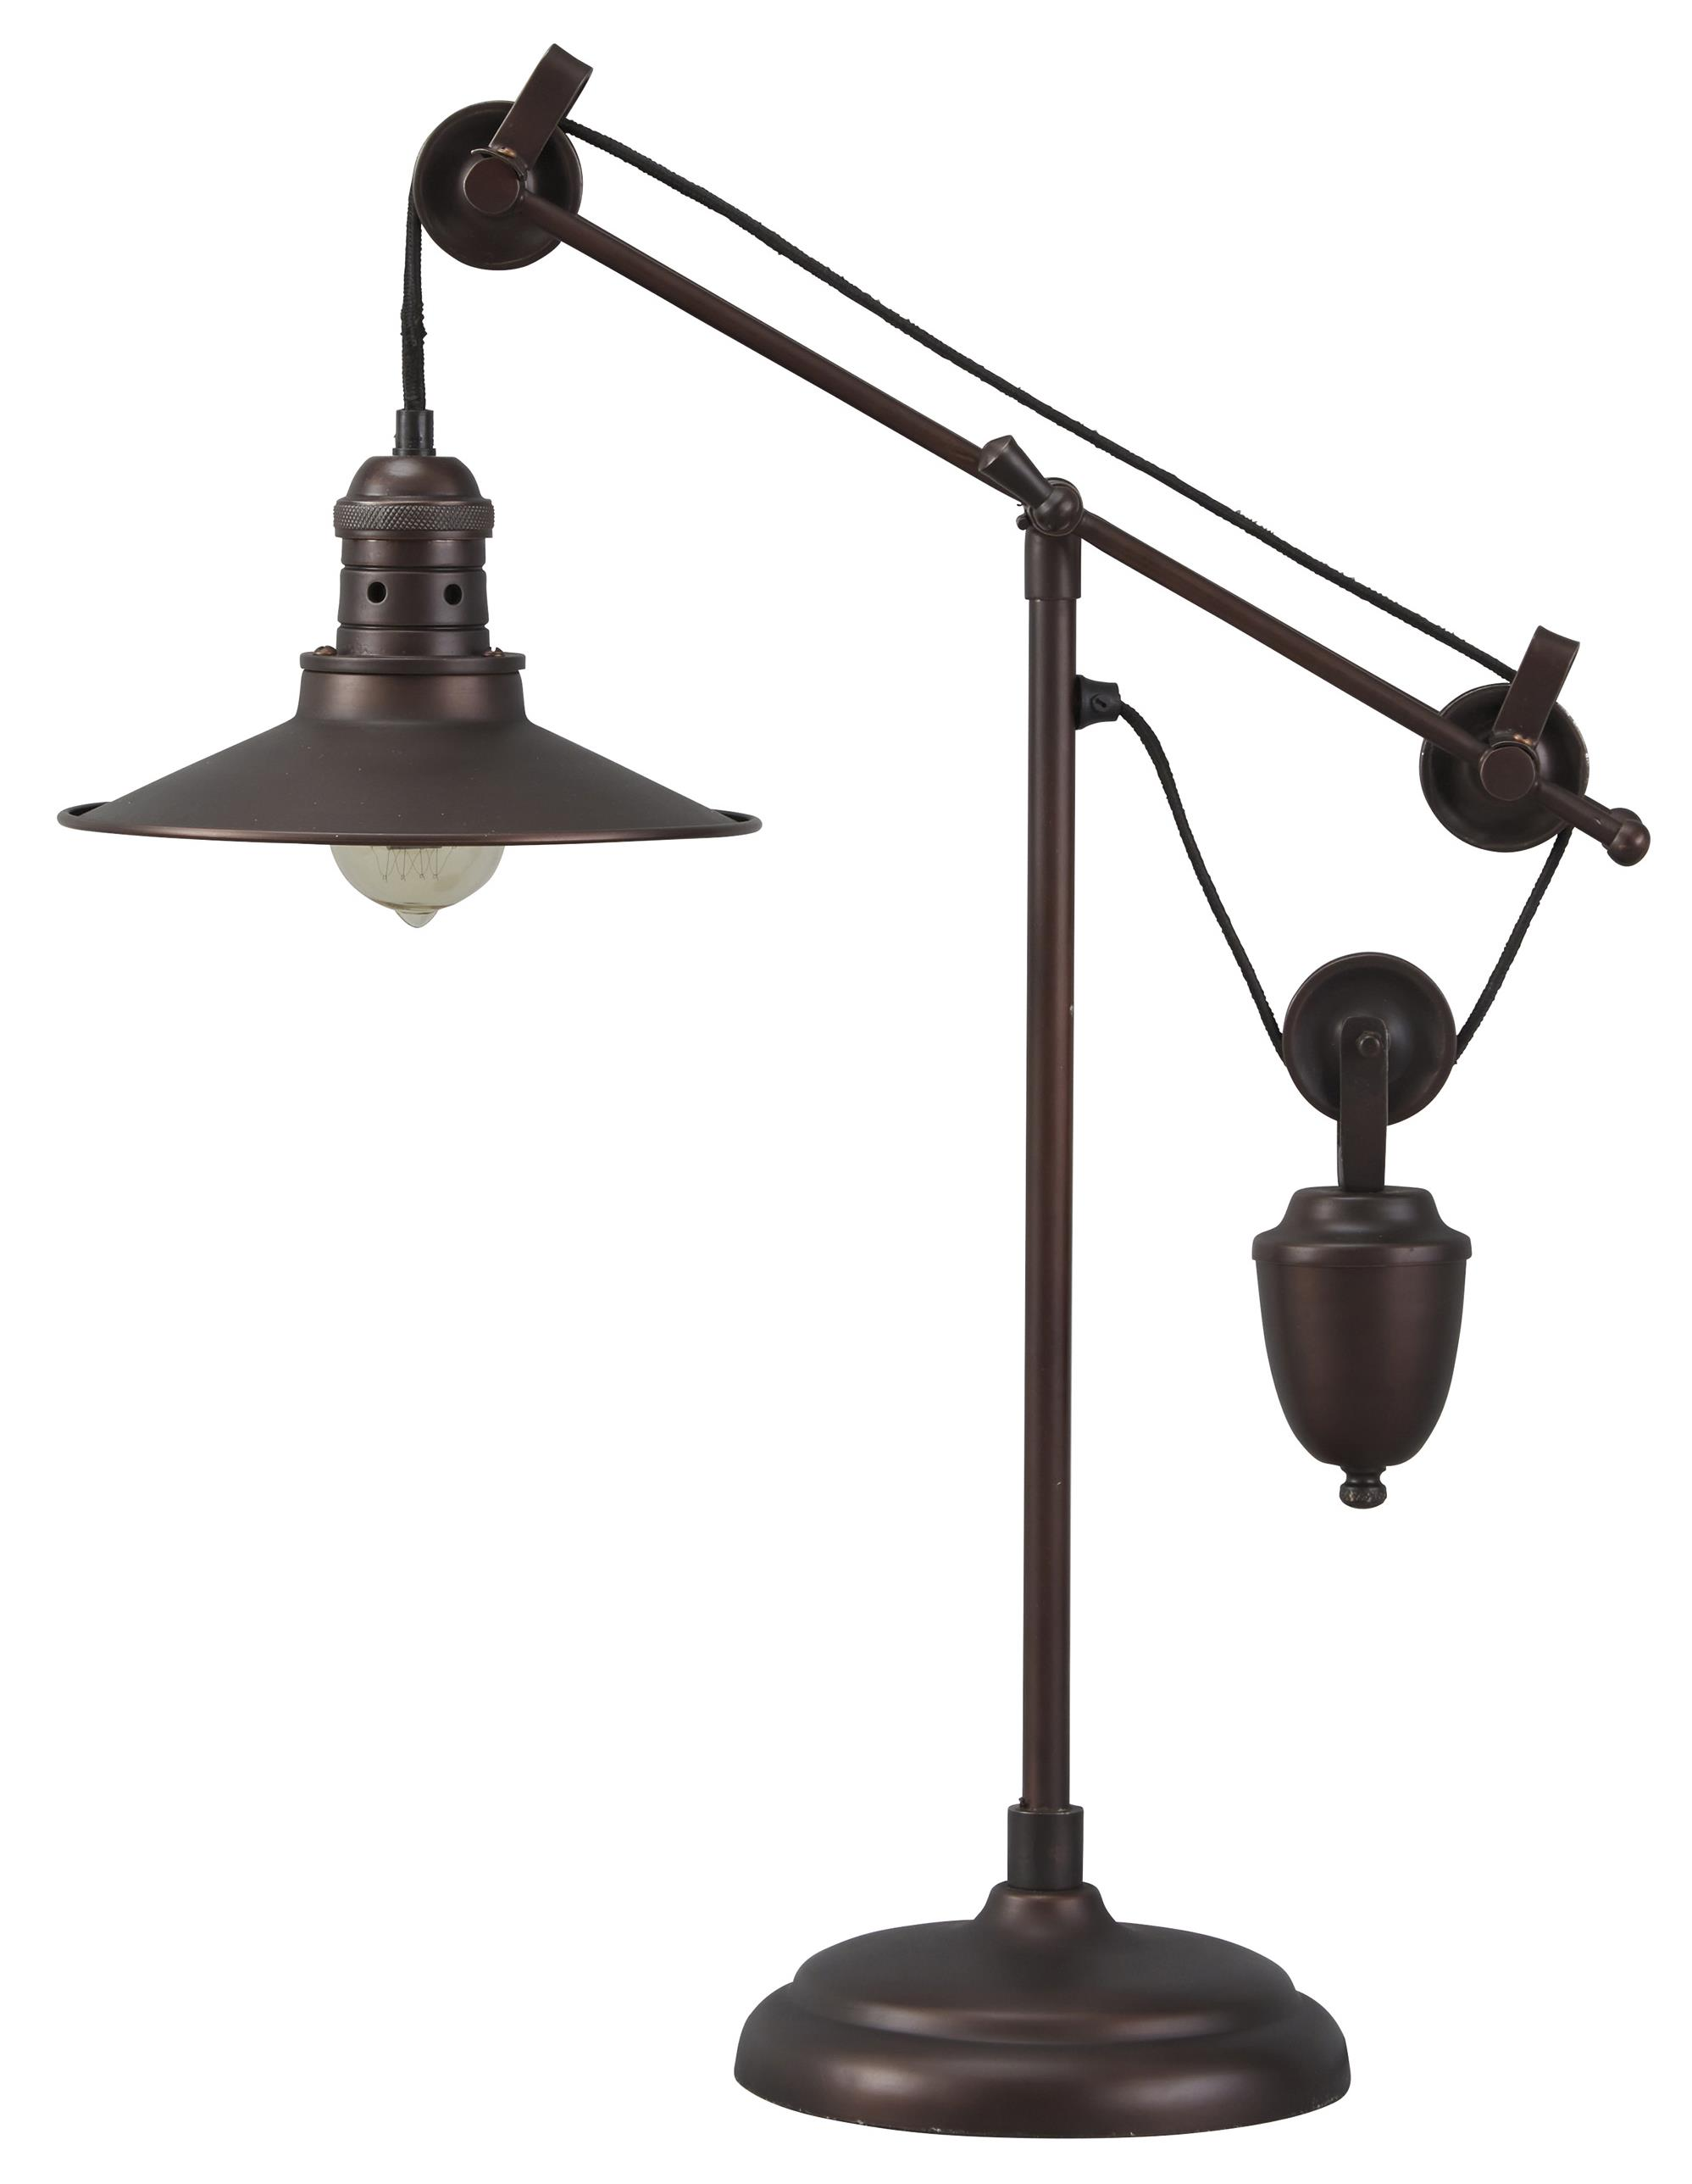 Lamps - Vintage Style Kylen Metal Desk Lamp by Signature Design by Ashley at Northeast Factory Direct